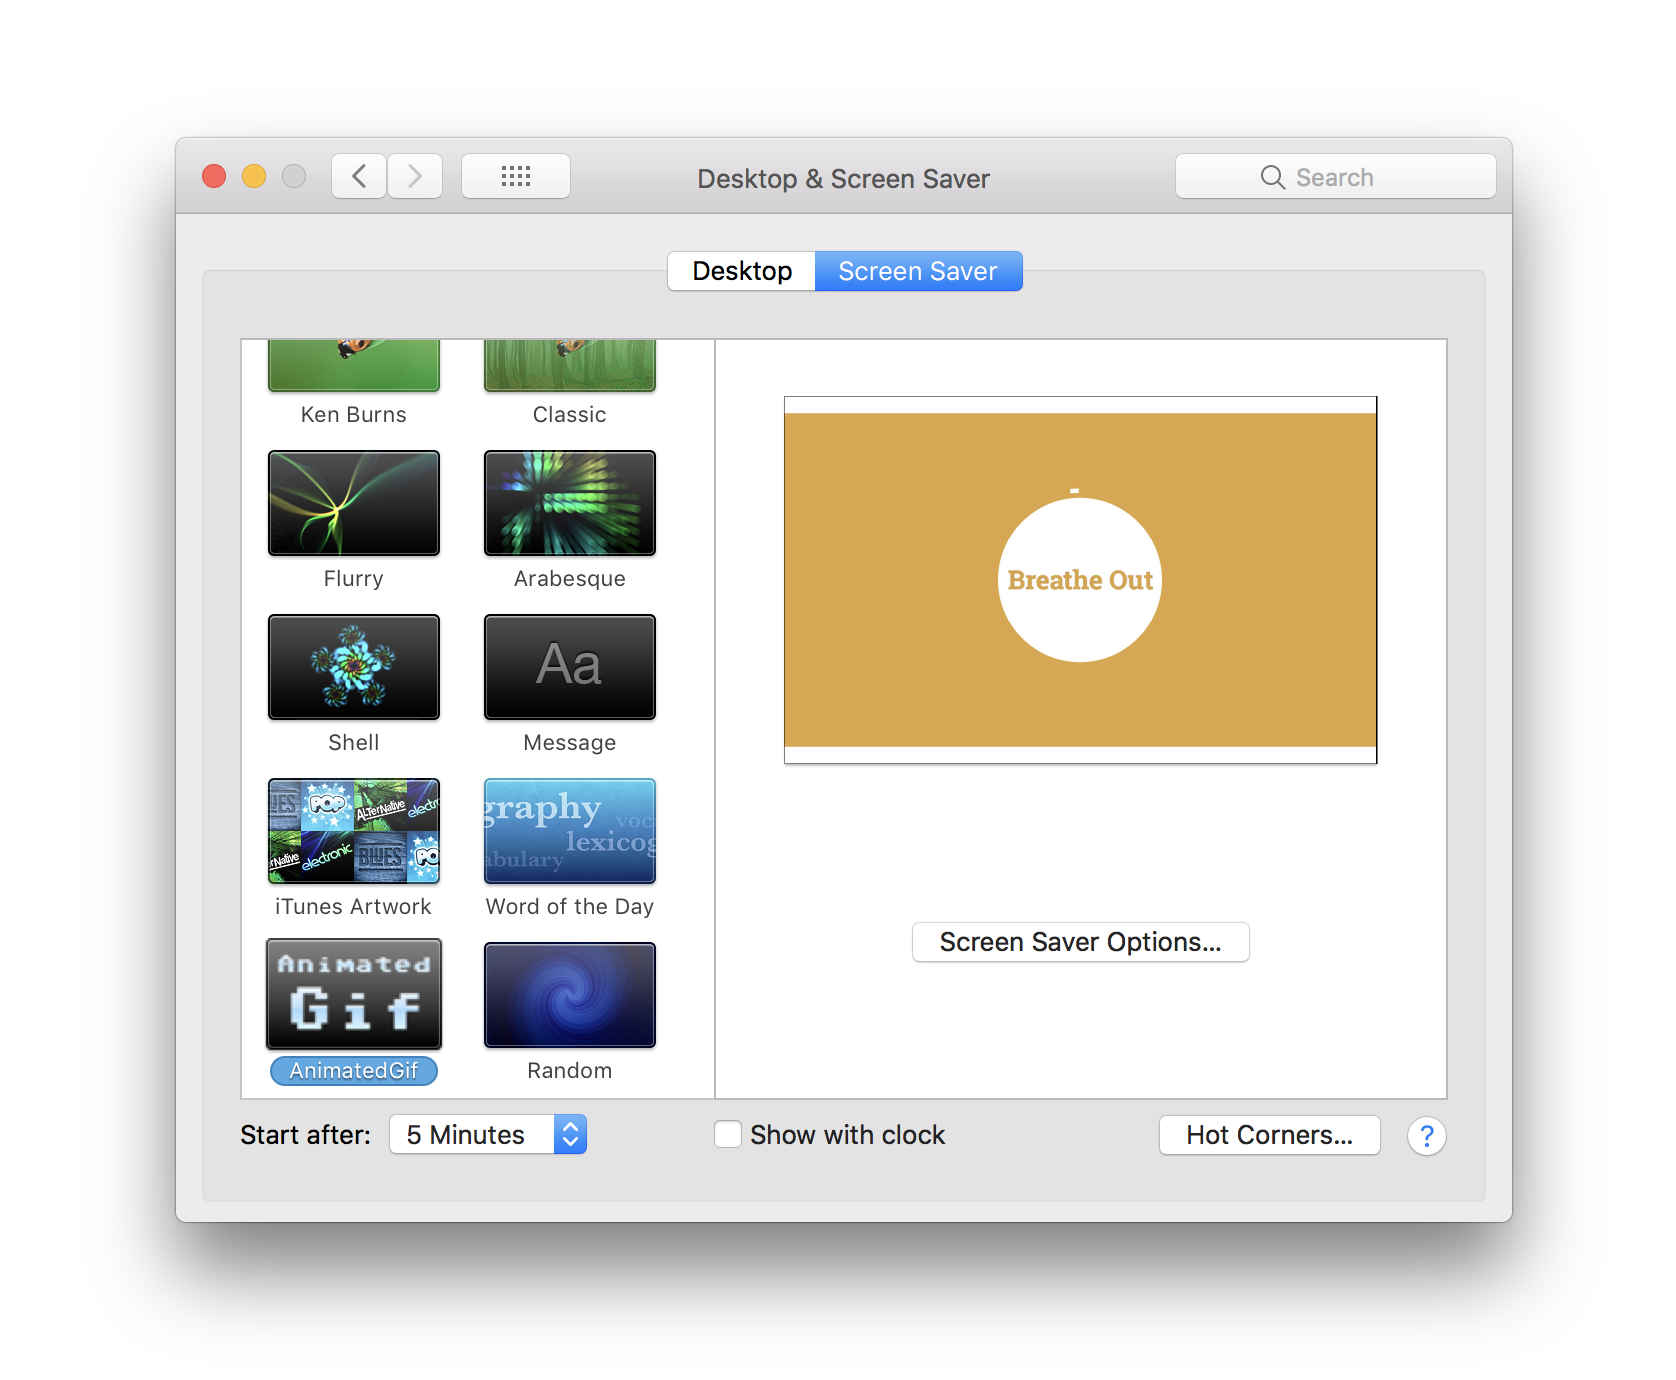 How to install Gifs as your screensaver